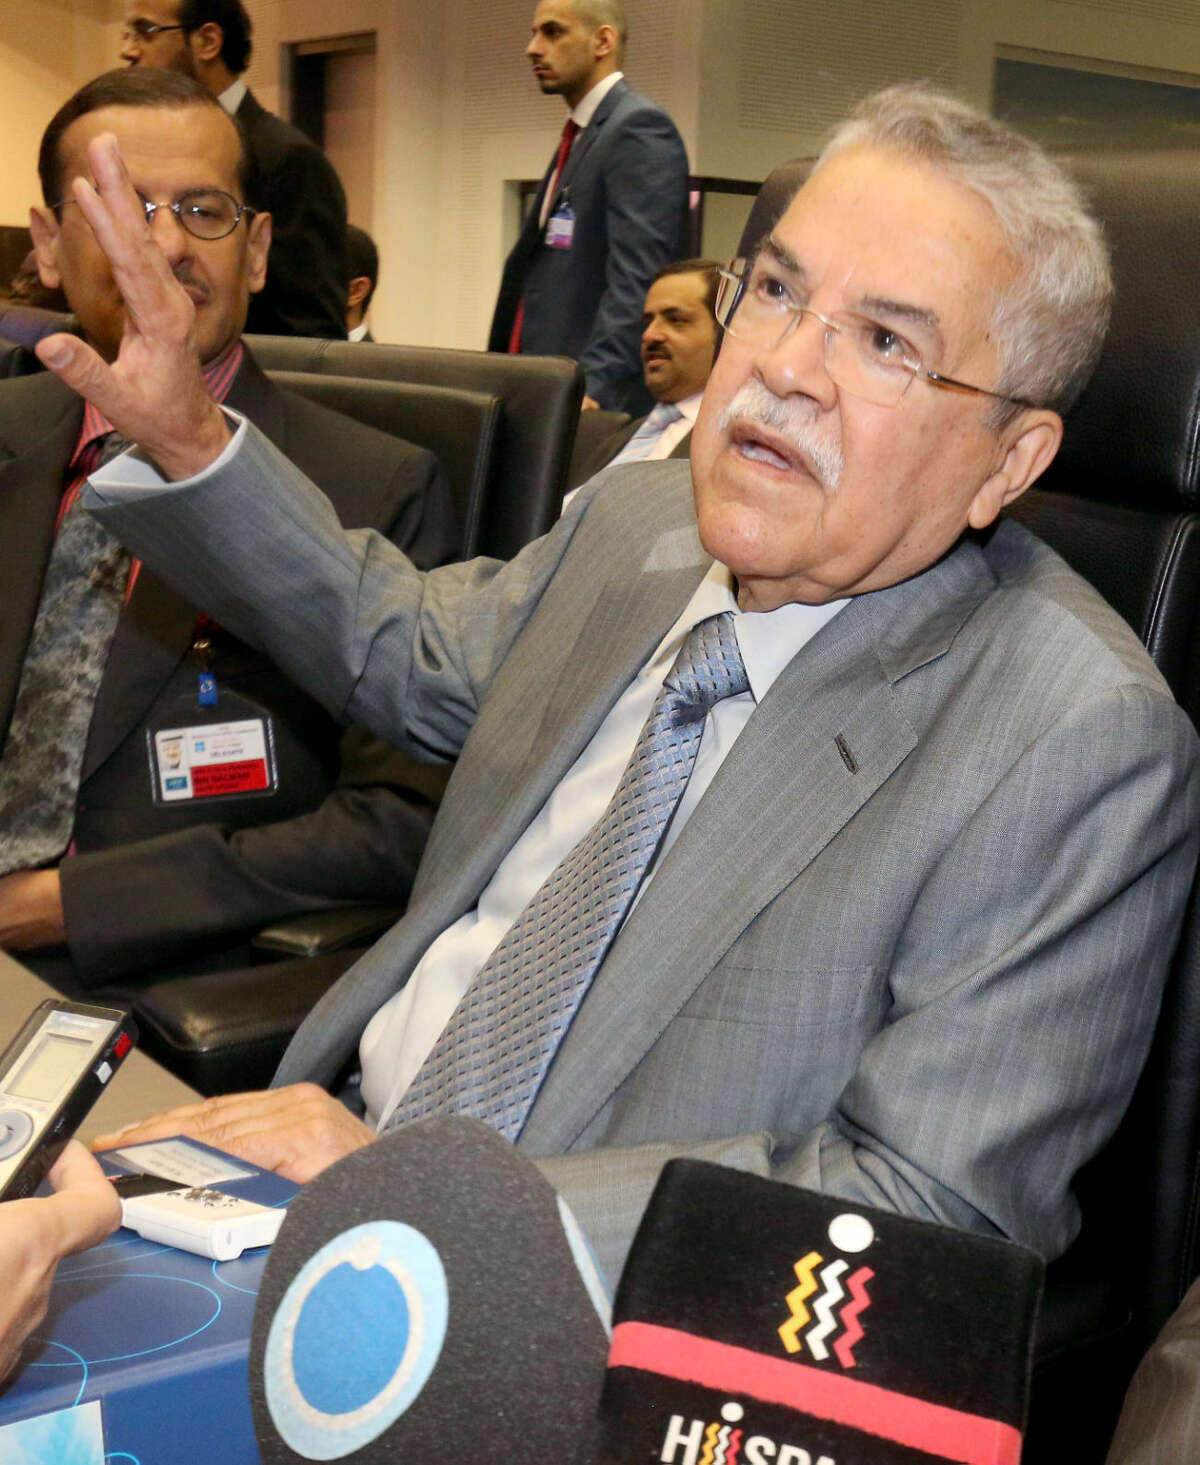 Saudi Arabia's Minister of Petroleum and Mineral Resources Ali Ibrahim Naimi speaks to journalists prior to the start of a meeting of the Organization of the Petroleum Exporting Countries, OPEC, at their headquarters in Vienna, Austria, Friday, June 5, 2015. (AP Photo/Ronald Zak)